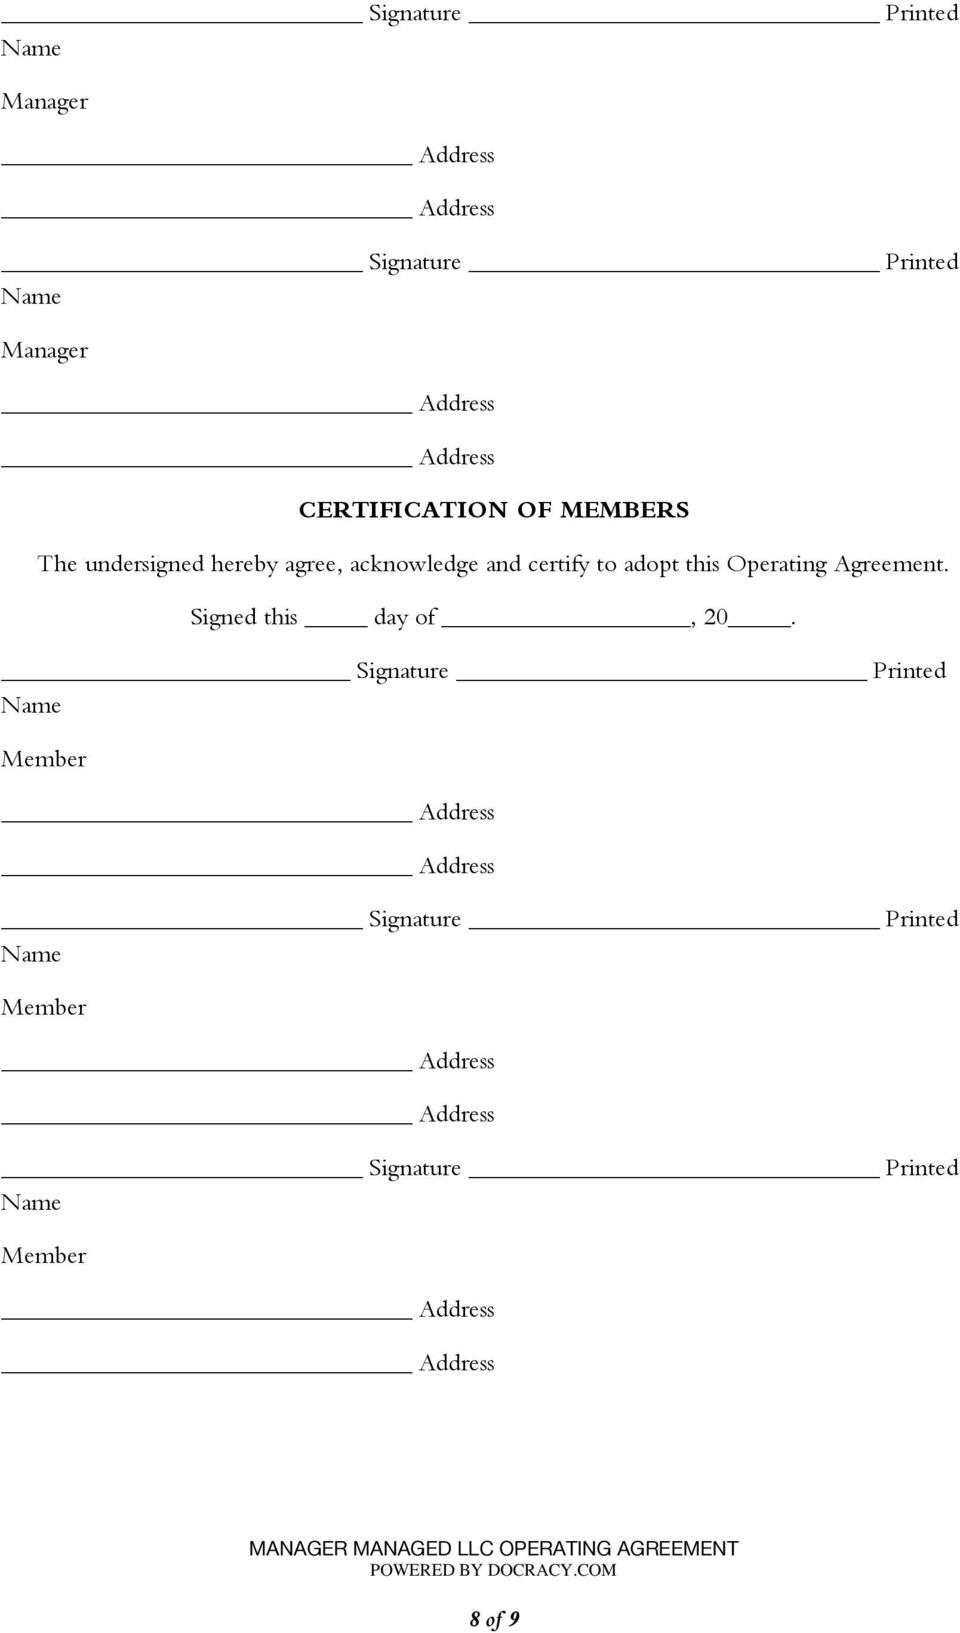 Manager Managed Llc Operating Agreement Pdf